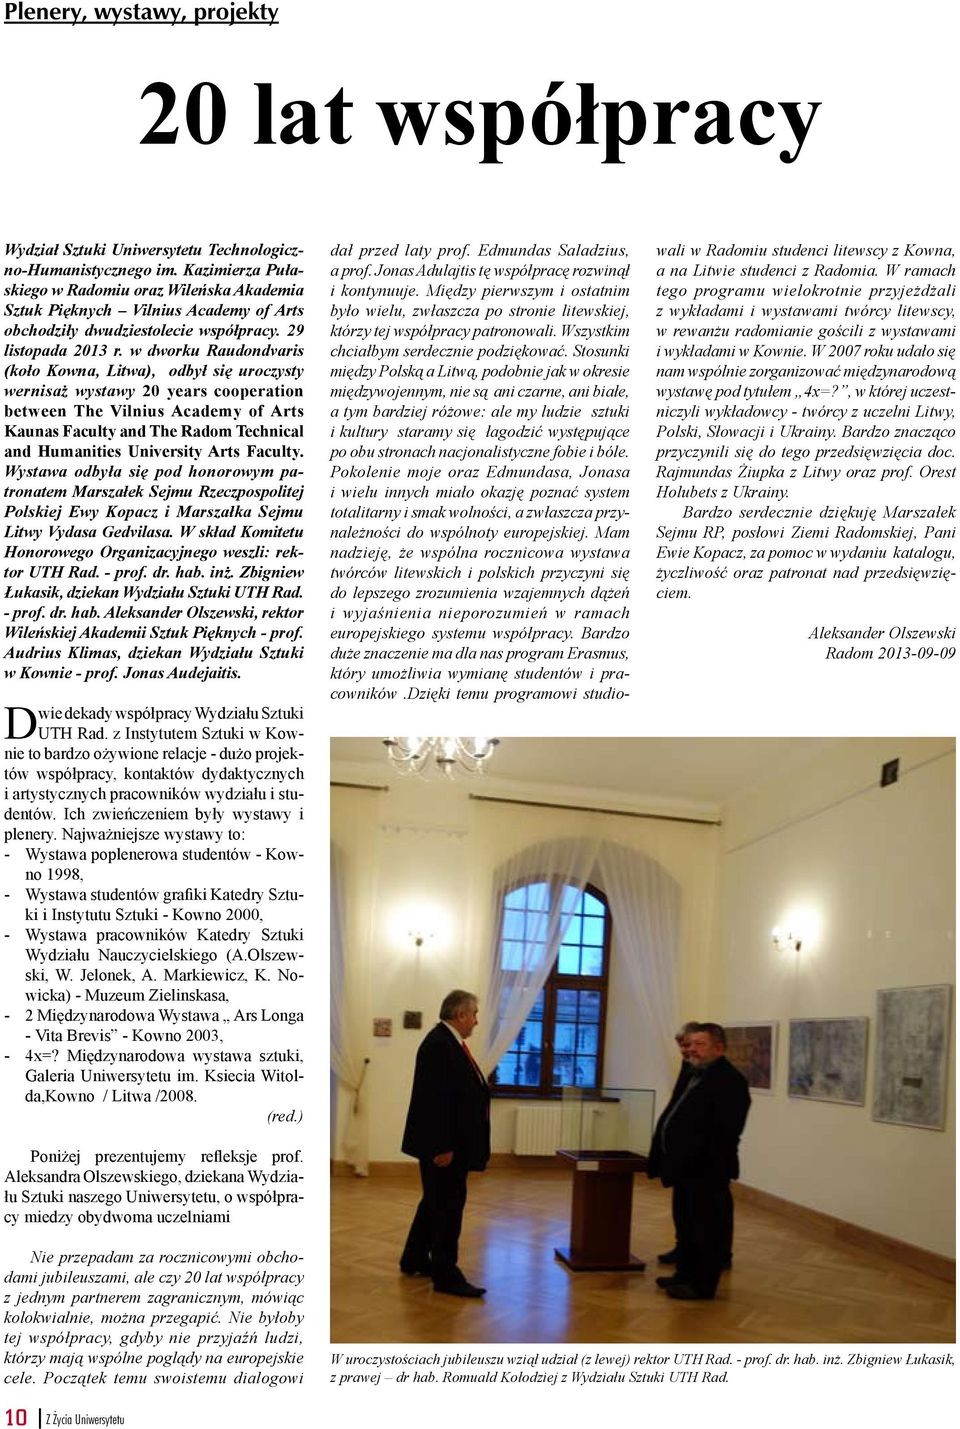 w dworku Raudondvaris (koło Kowna, Litwa), odbył się uroczysty wernisaż wystawy 20 years cooperation between The Vilnius Academy of Arts Kaunas Faculty and The Radom Technical and Humanities